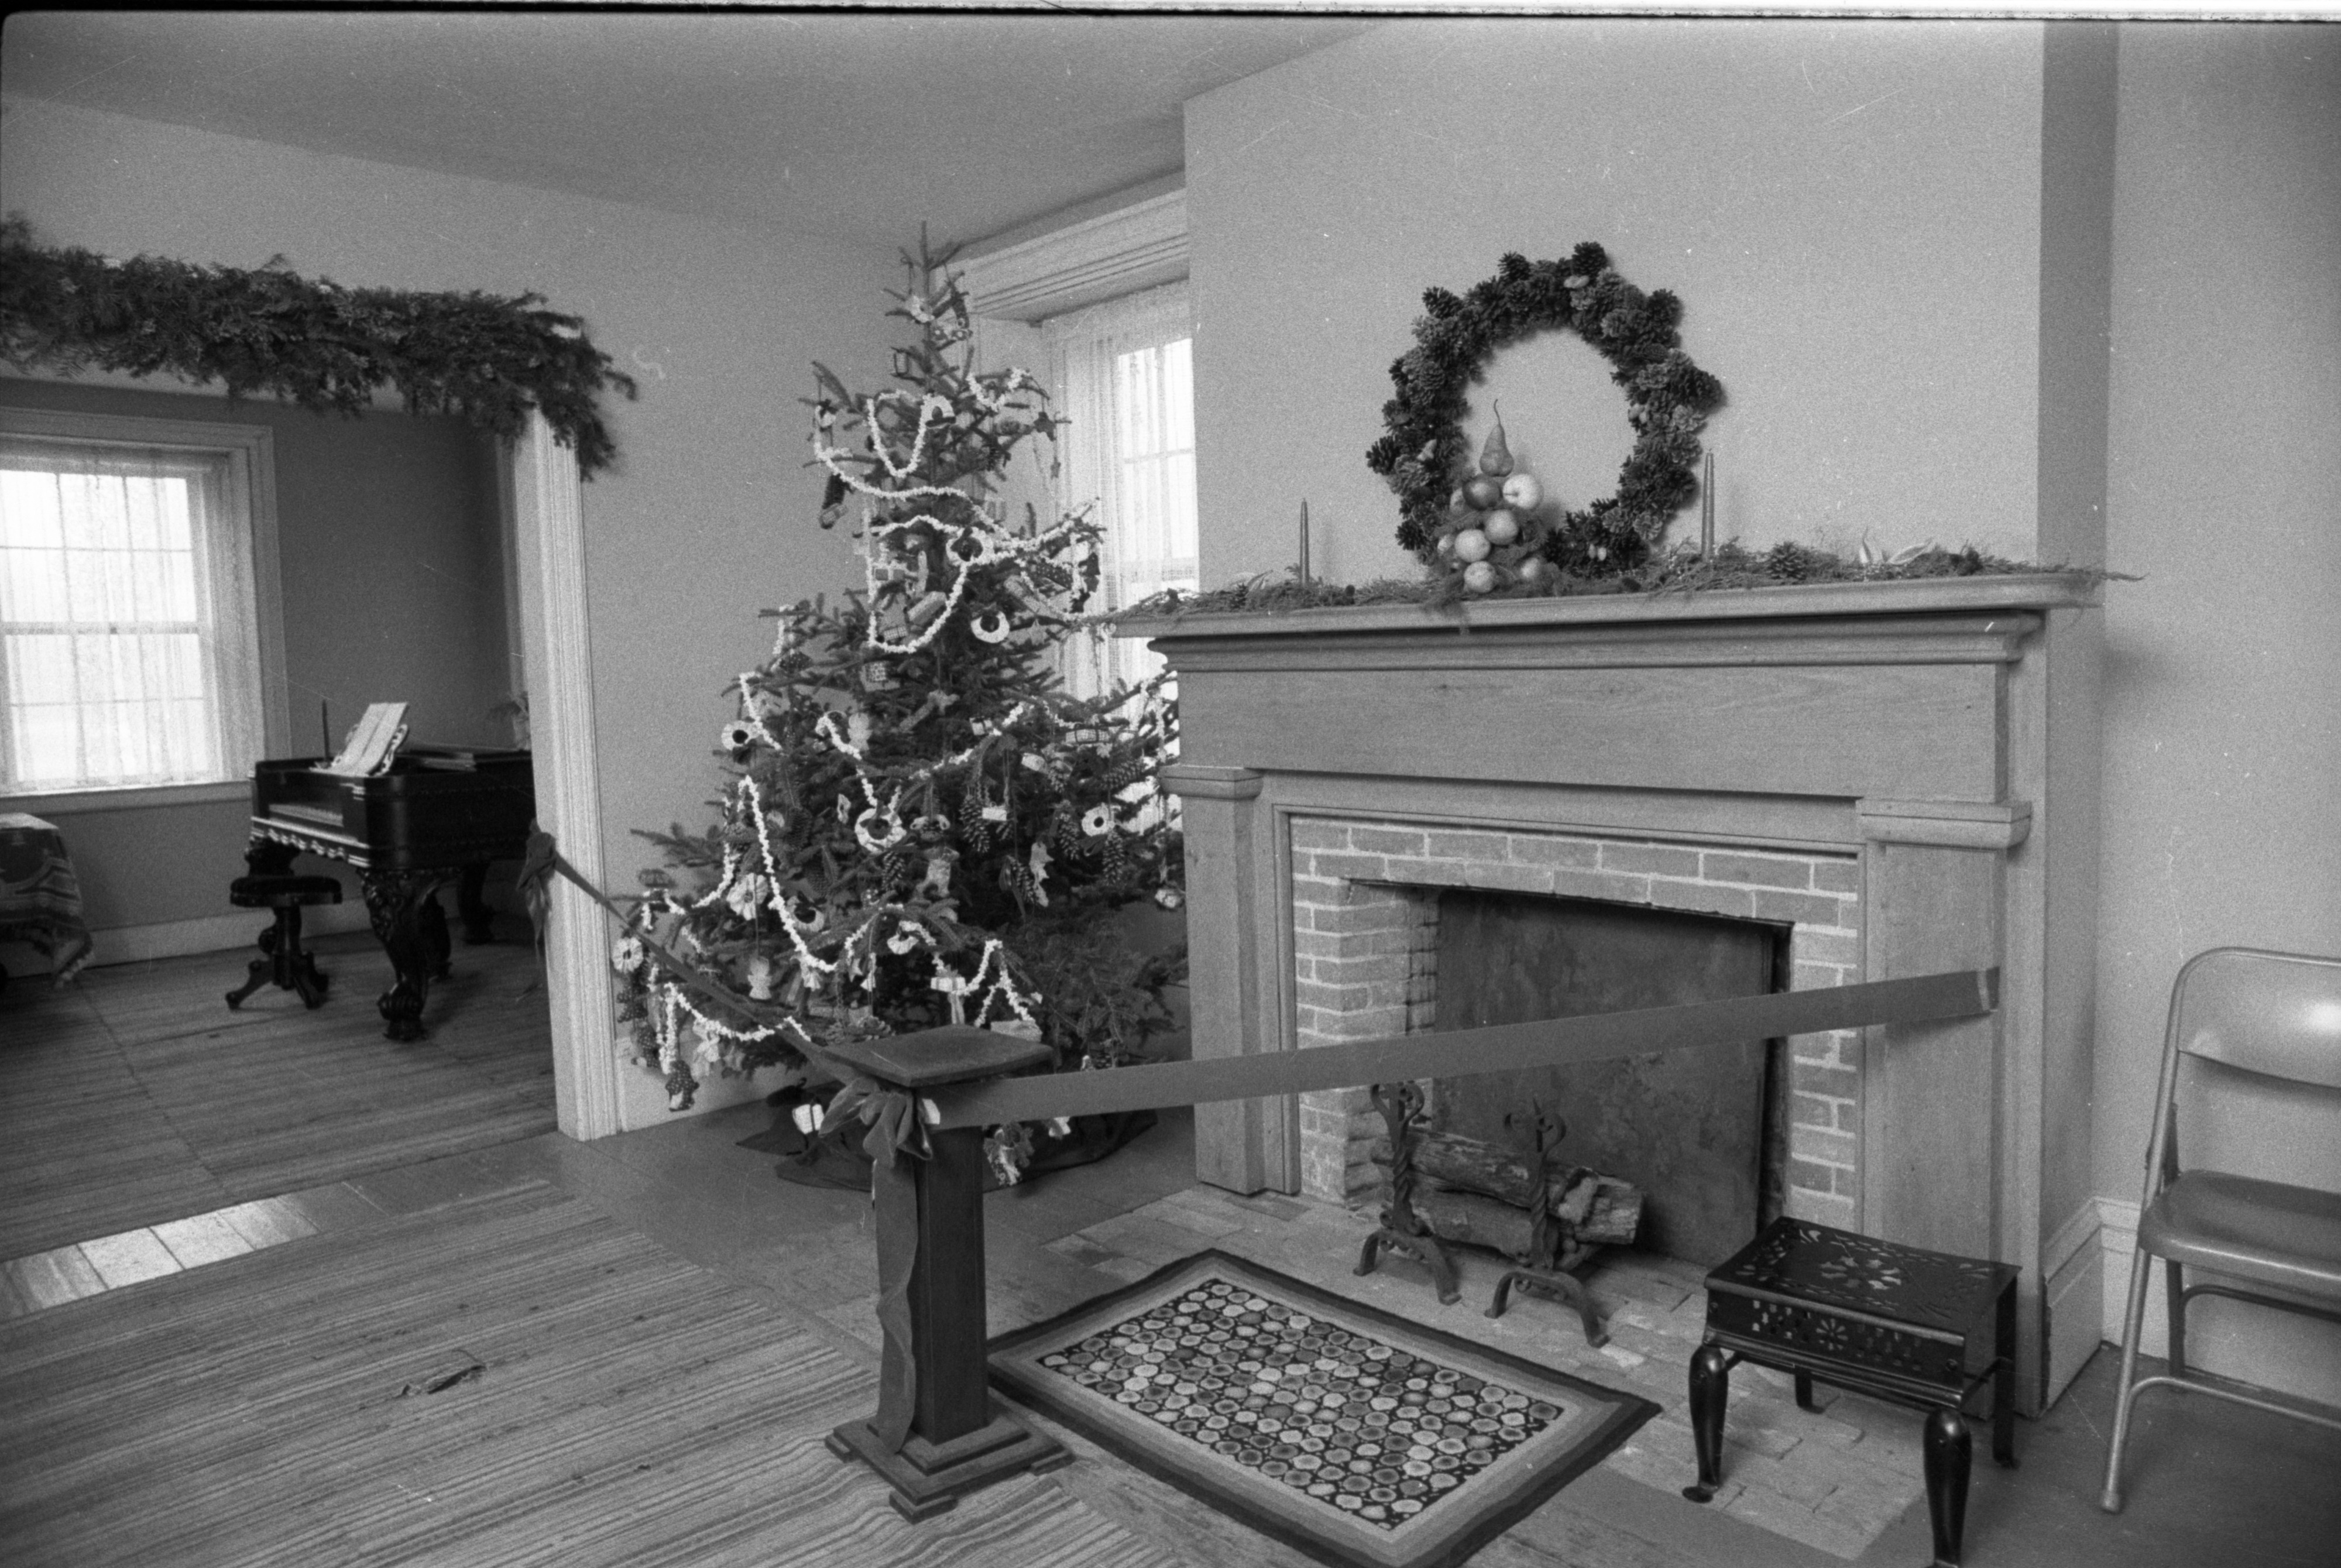 Christmas Tree & Other Decorations At Cobblestone Farmhouse, December 22, 1980 image